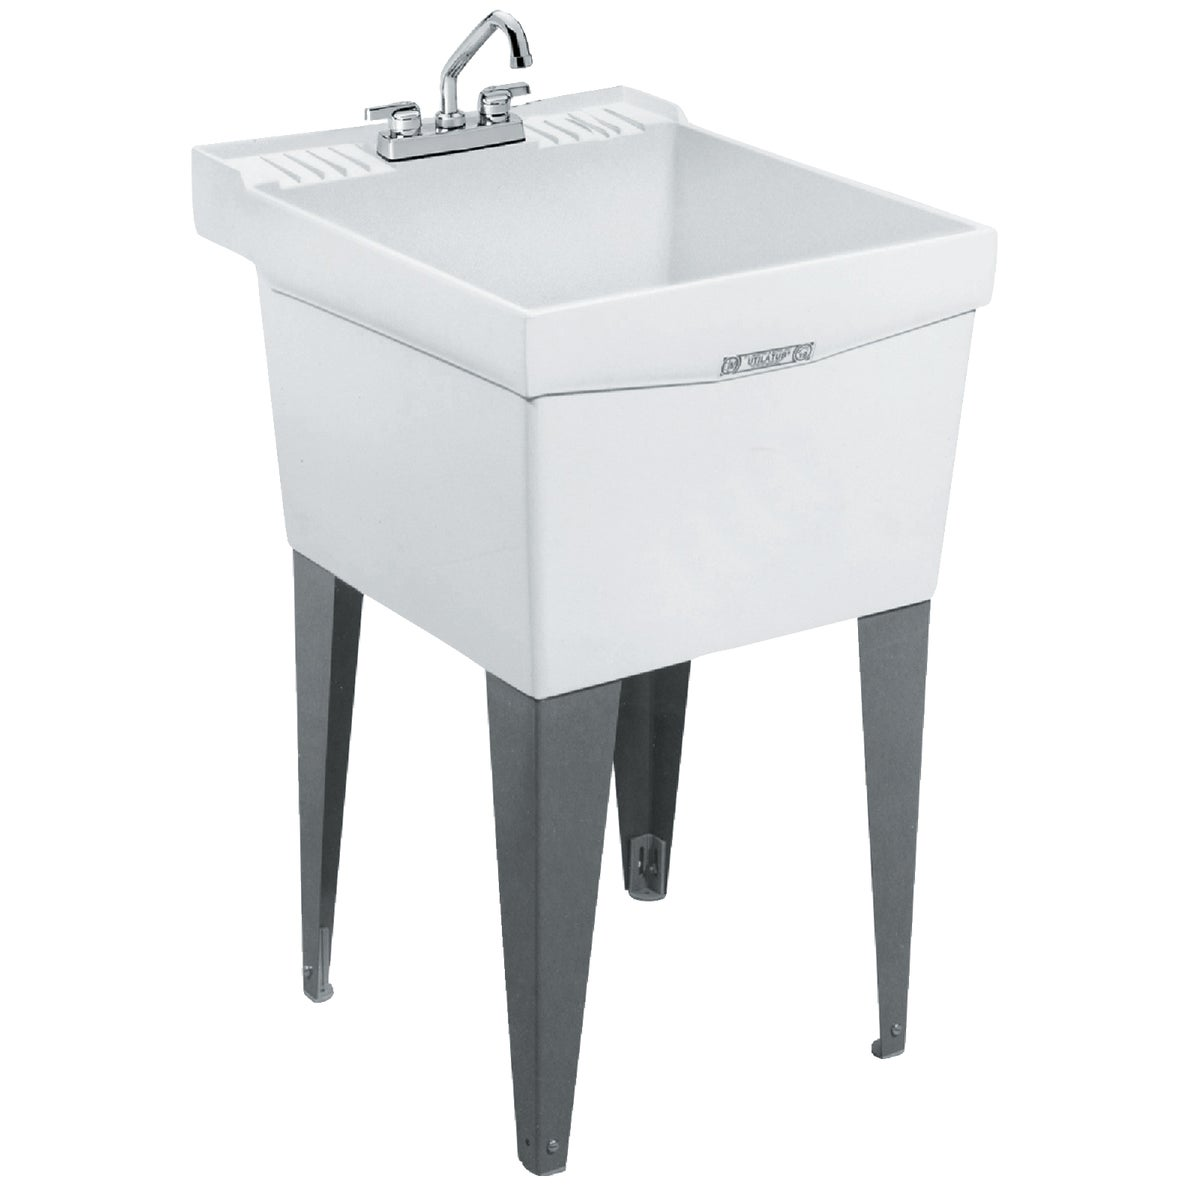 Mustee, E. L. SINGLE LAUNDRY TUB 19F